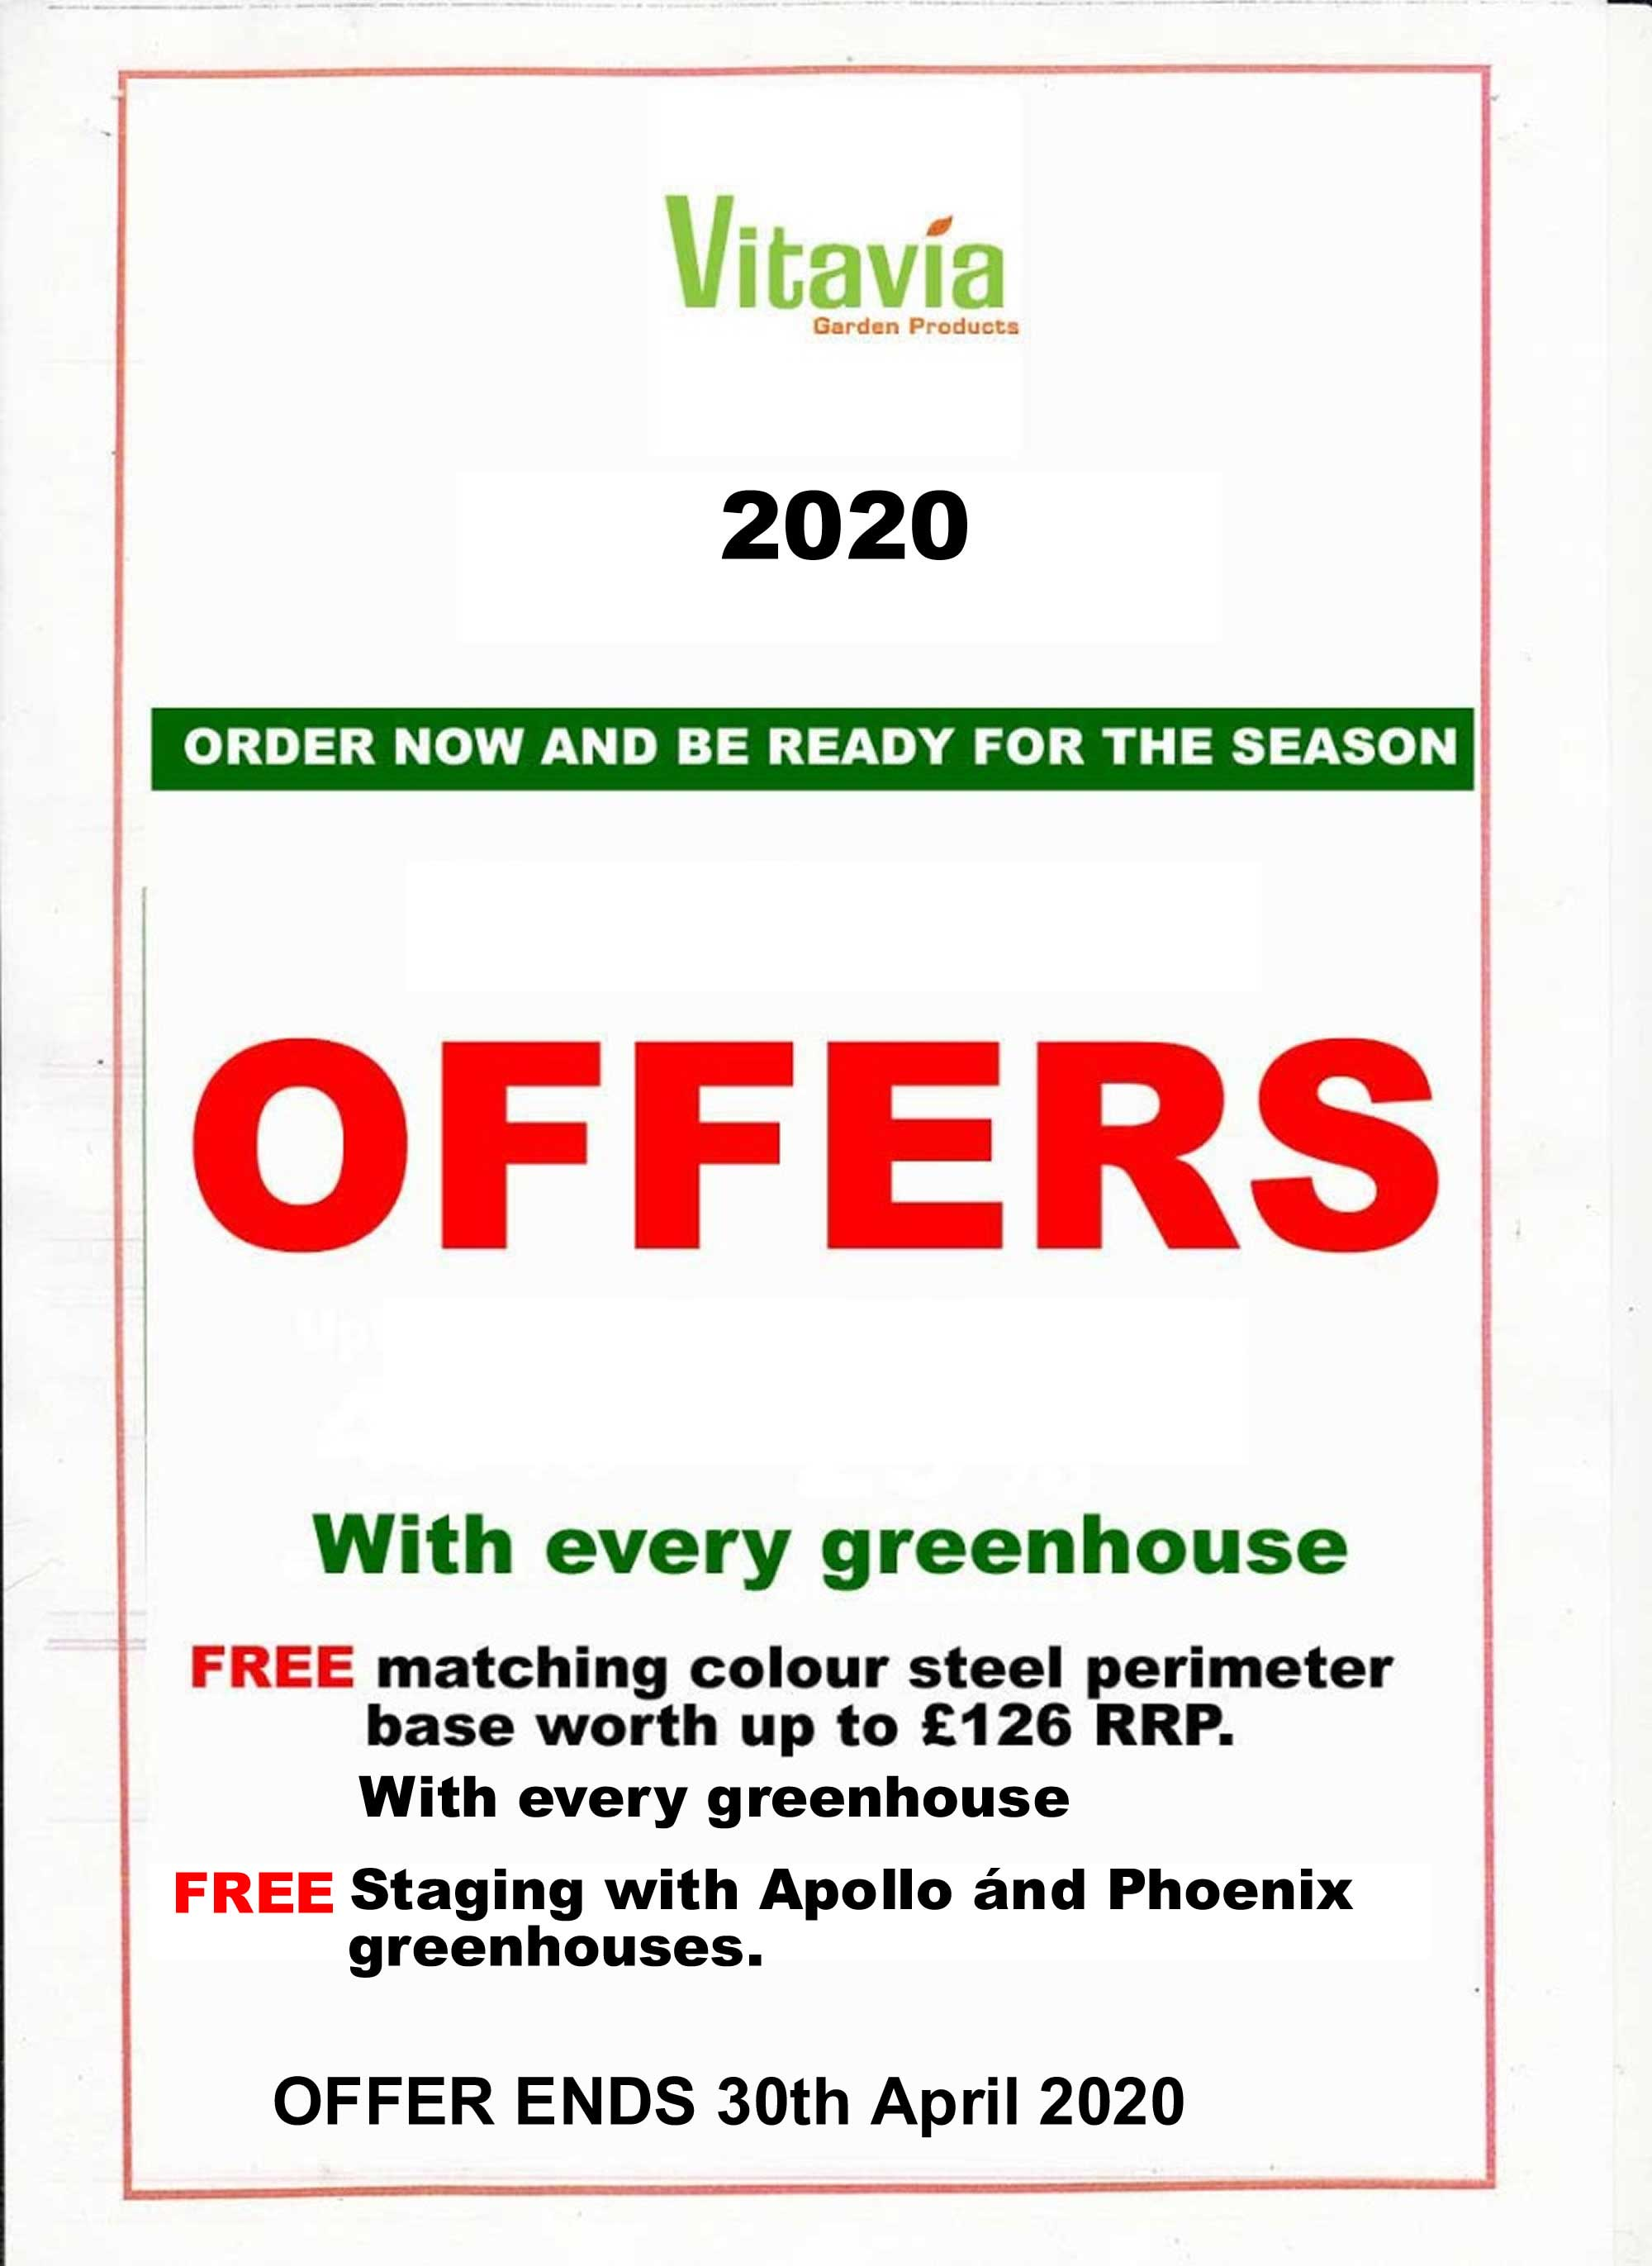 Vitavia Greenhouse Promotion